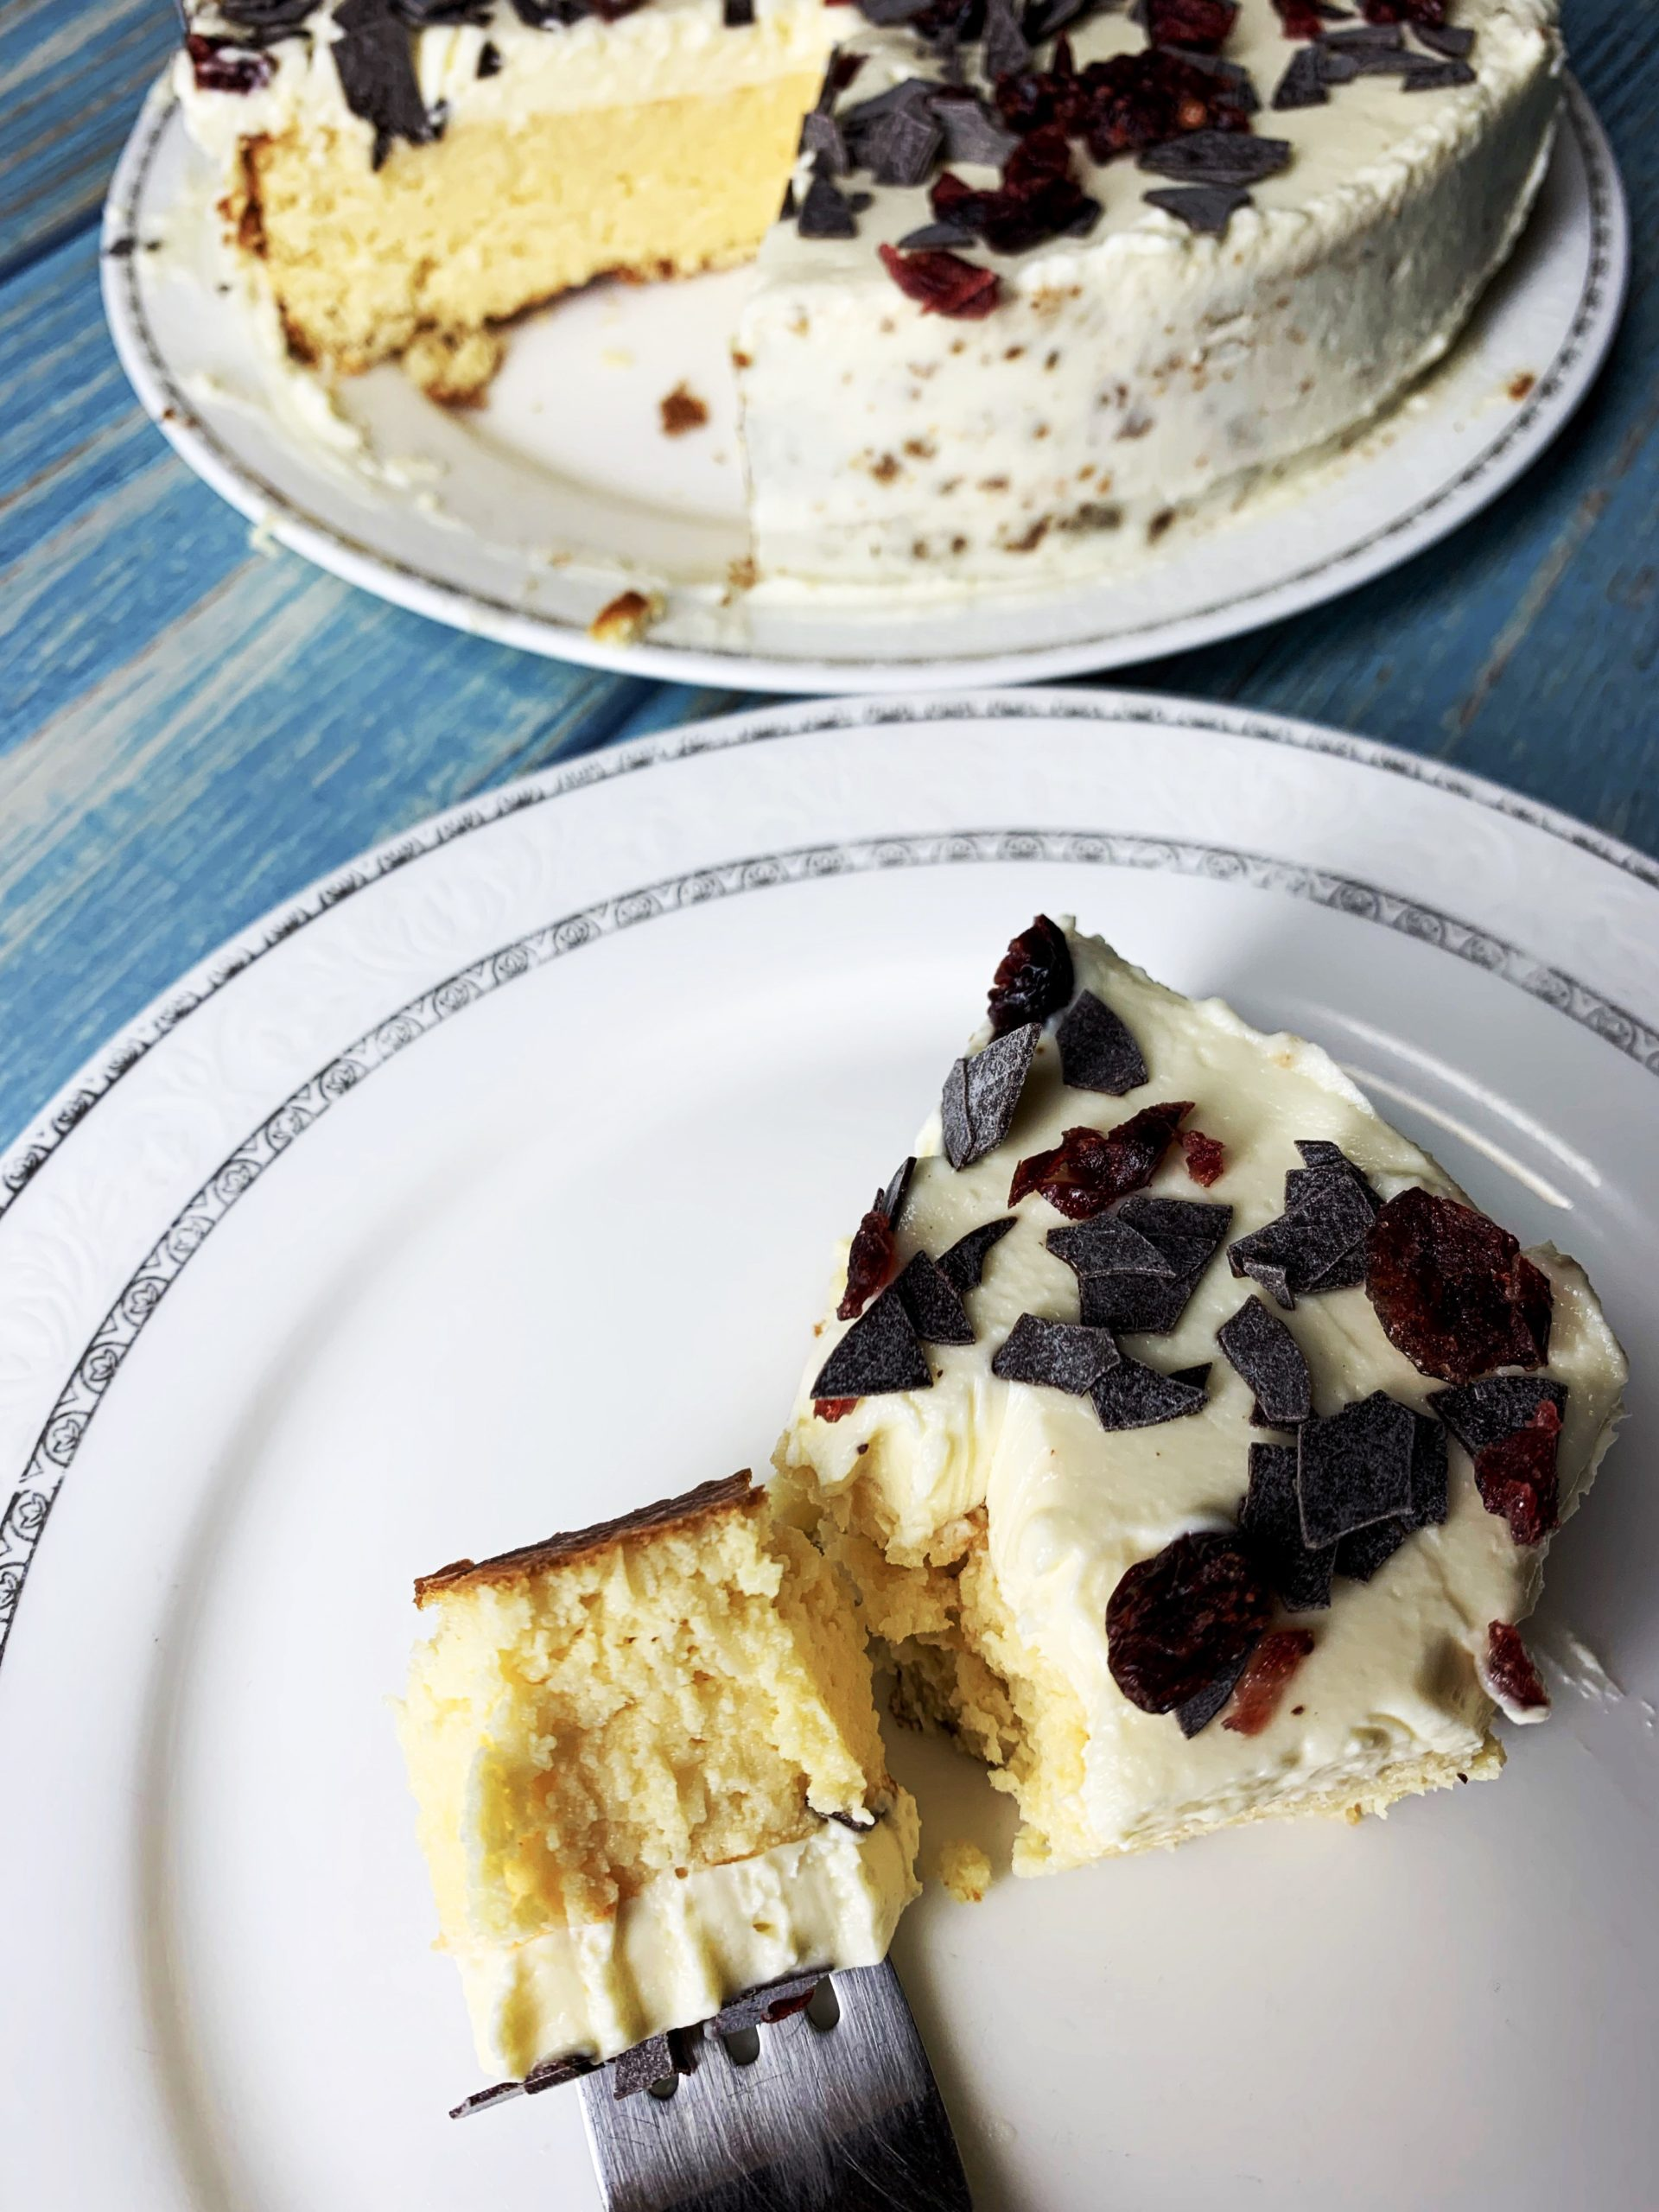 Picture of a slice of low carb yogurt cake